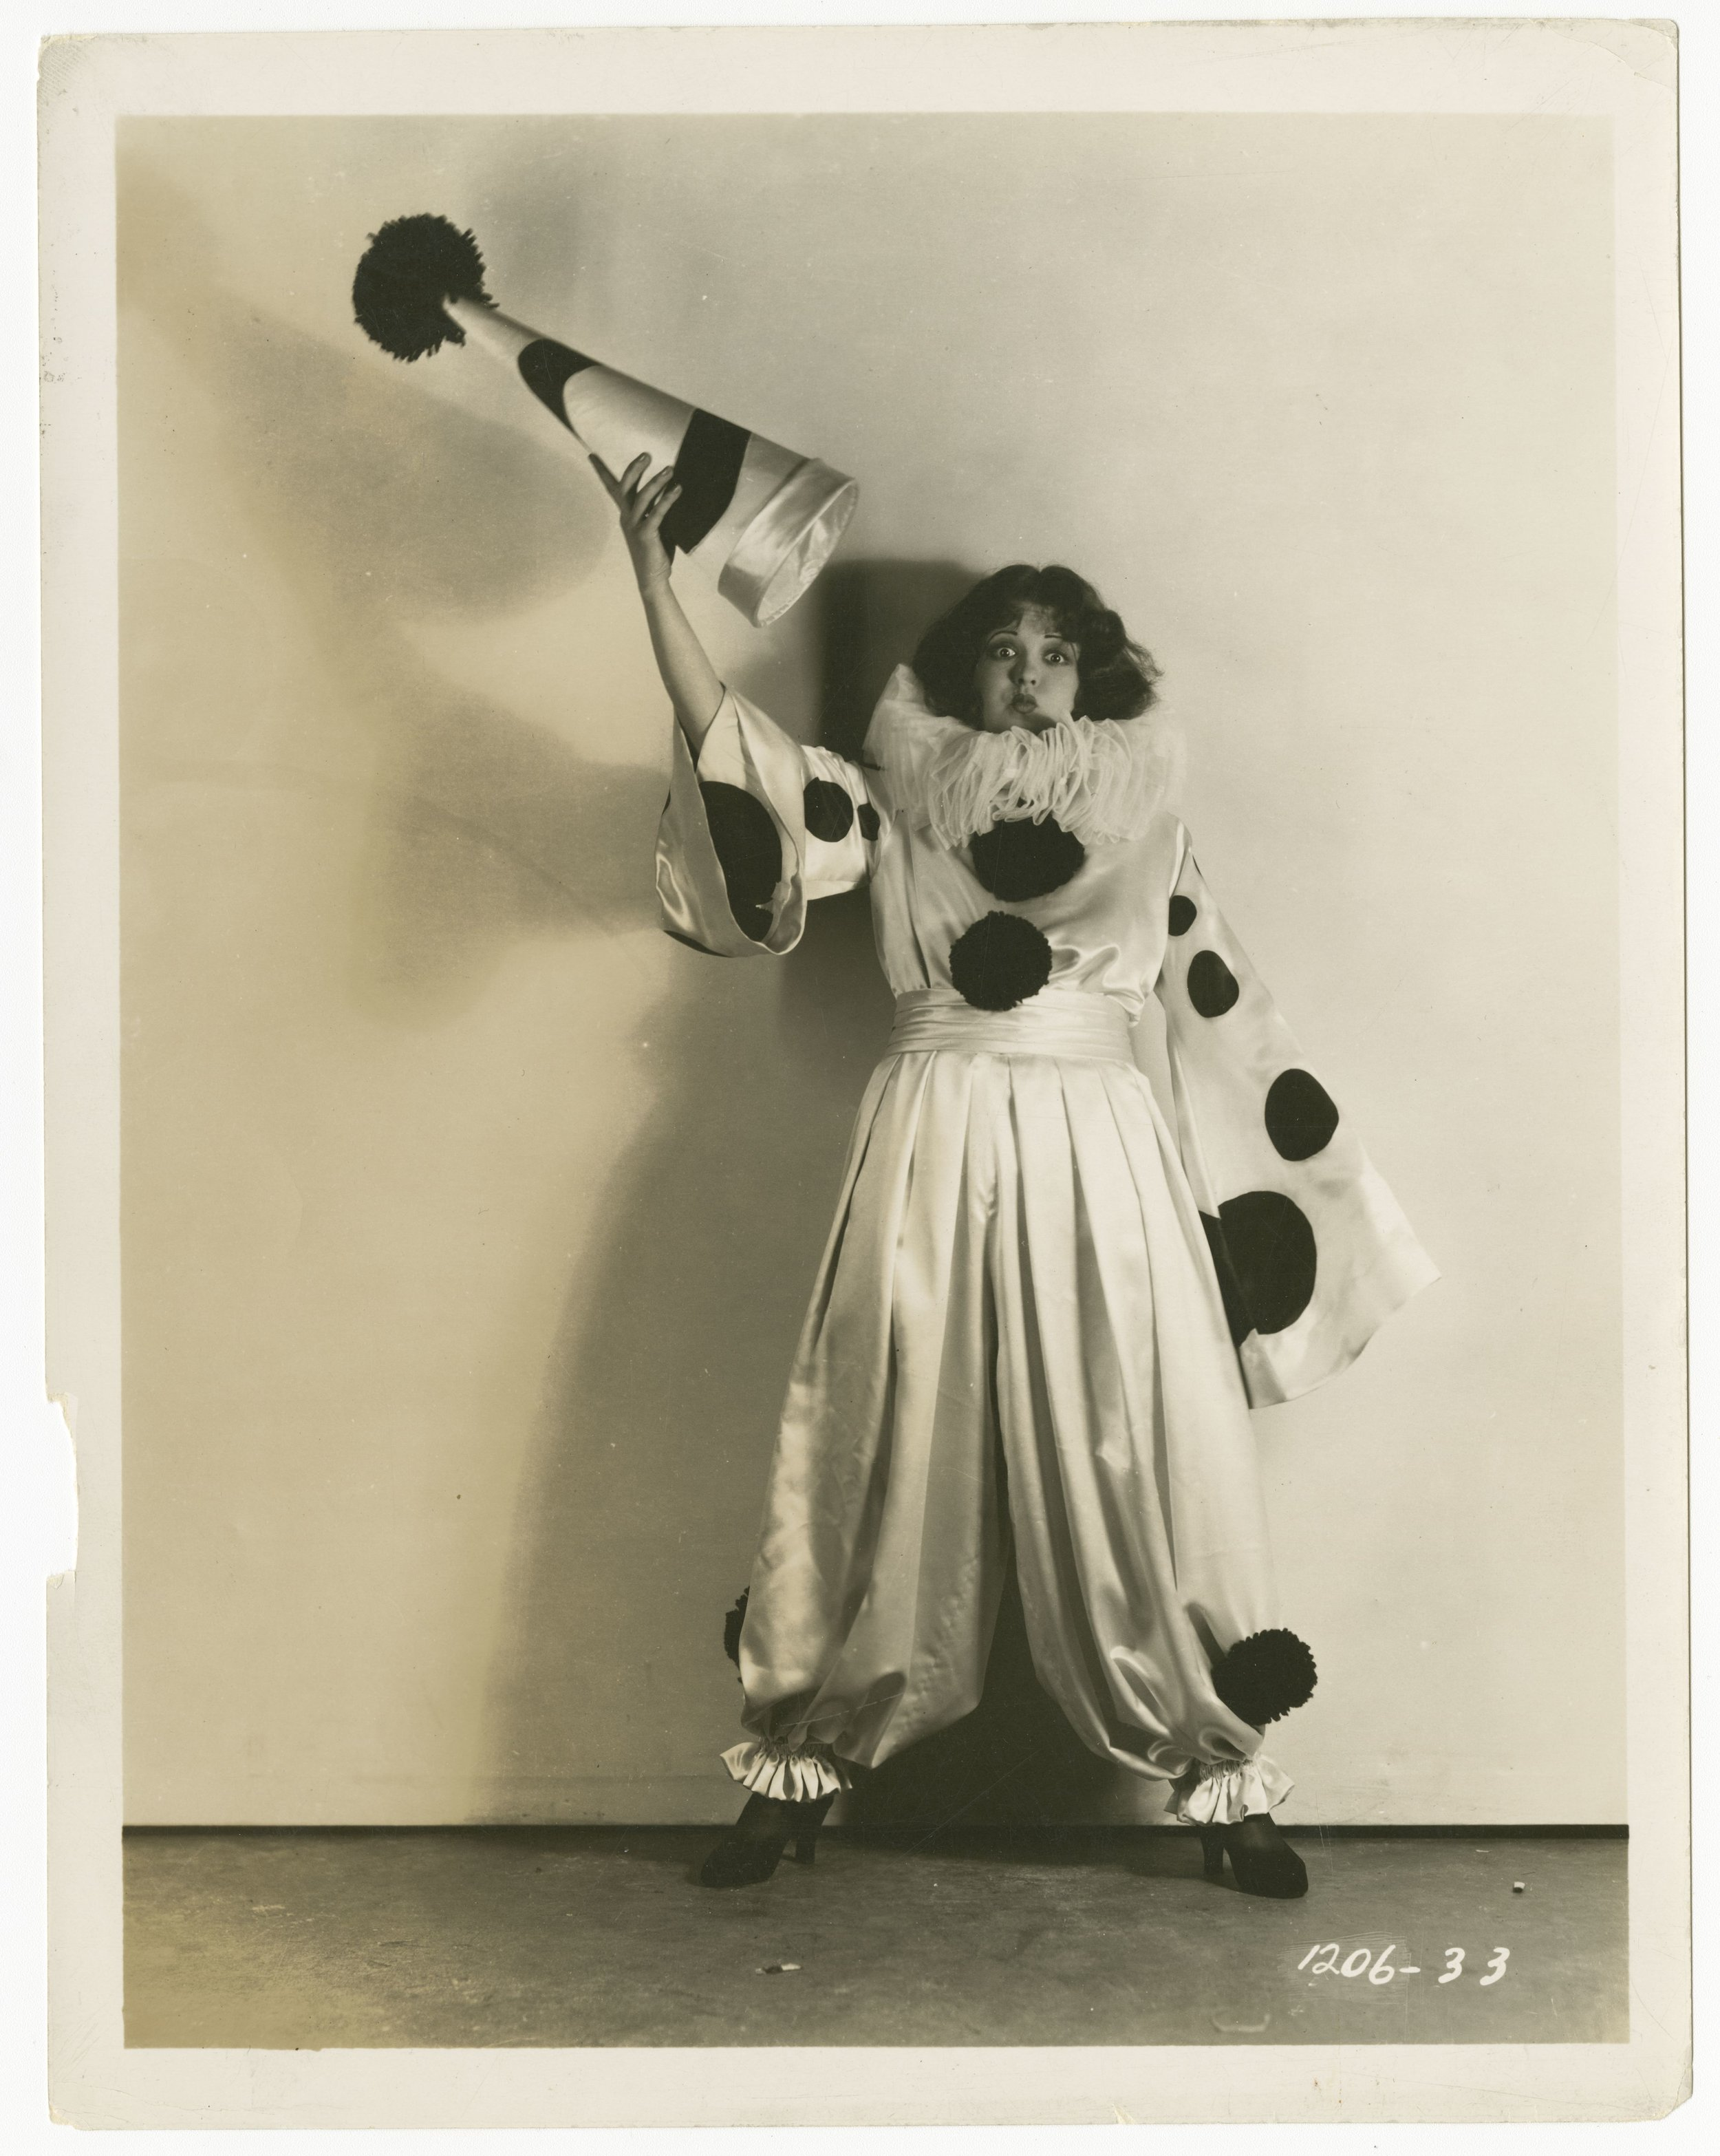 Clara Bow in Dangerous Curves 1929. Photo by George Hommel. Source: BFI National Archive